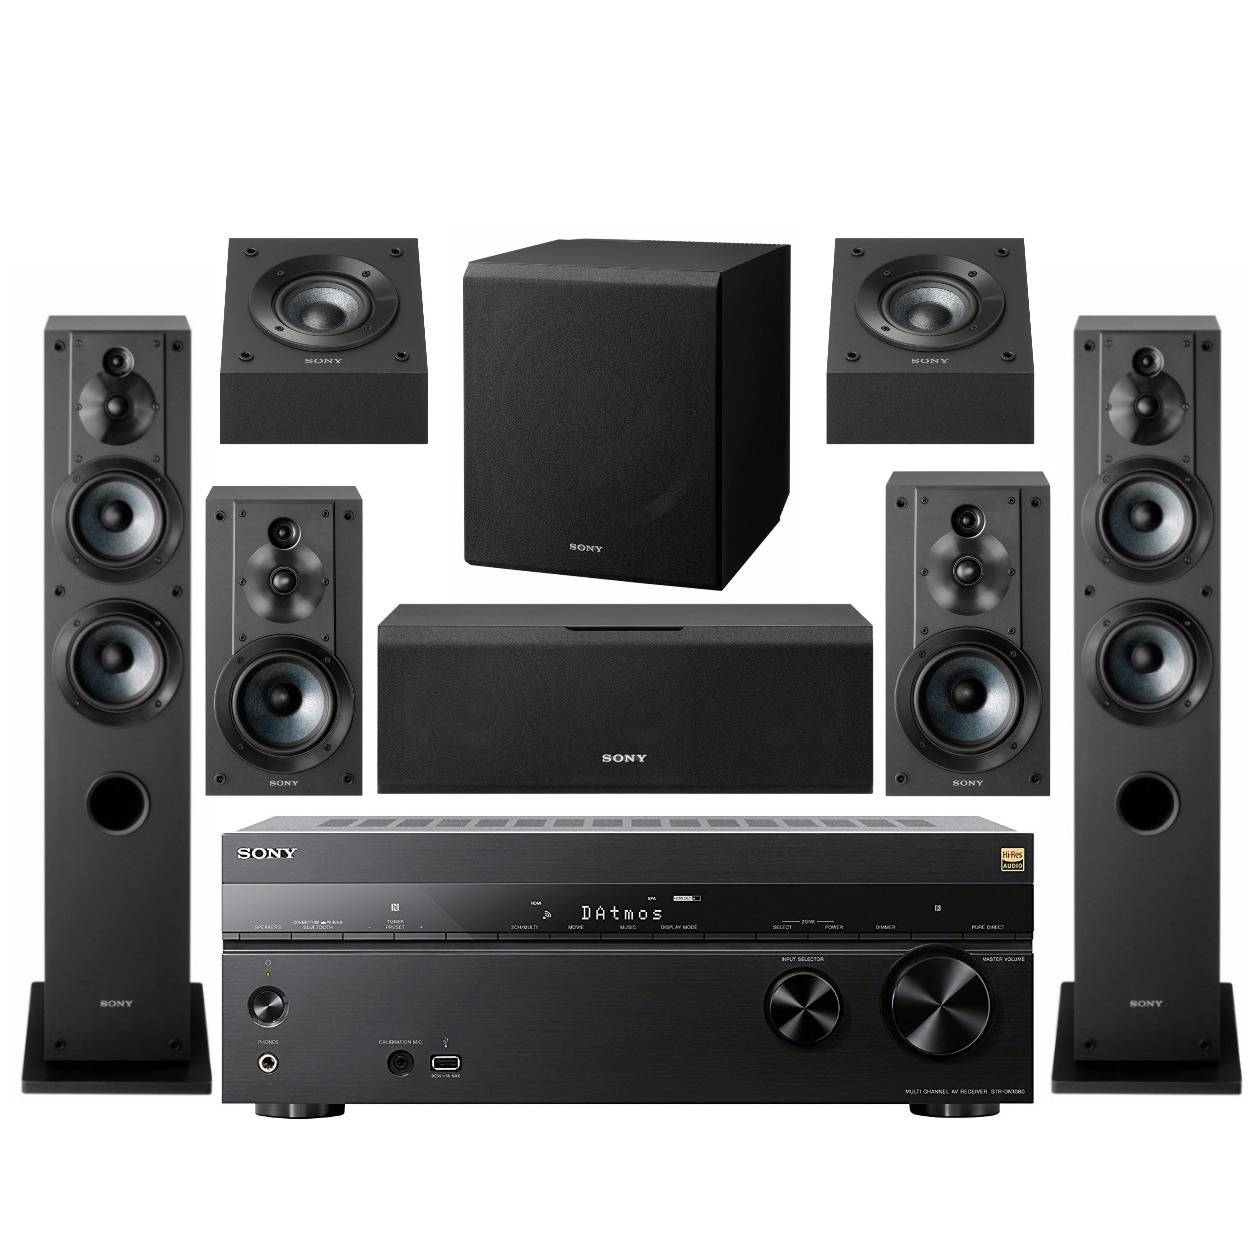 Sony STR-DN1080 7.2-Channel Home Theater AV Receiver with Active Subwoofer and Speakers Bundle